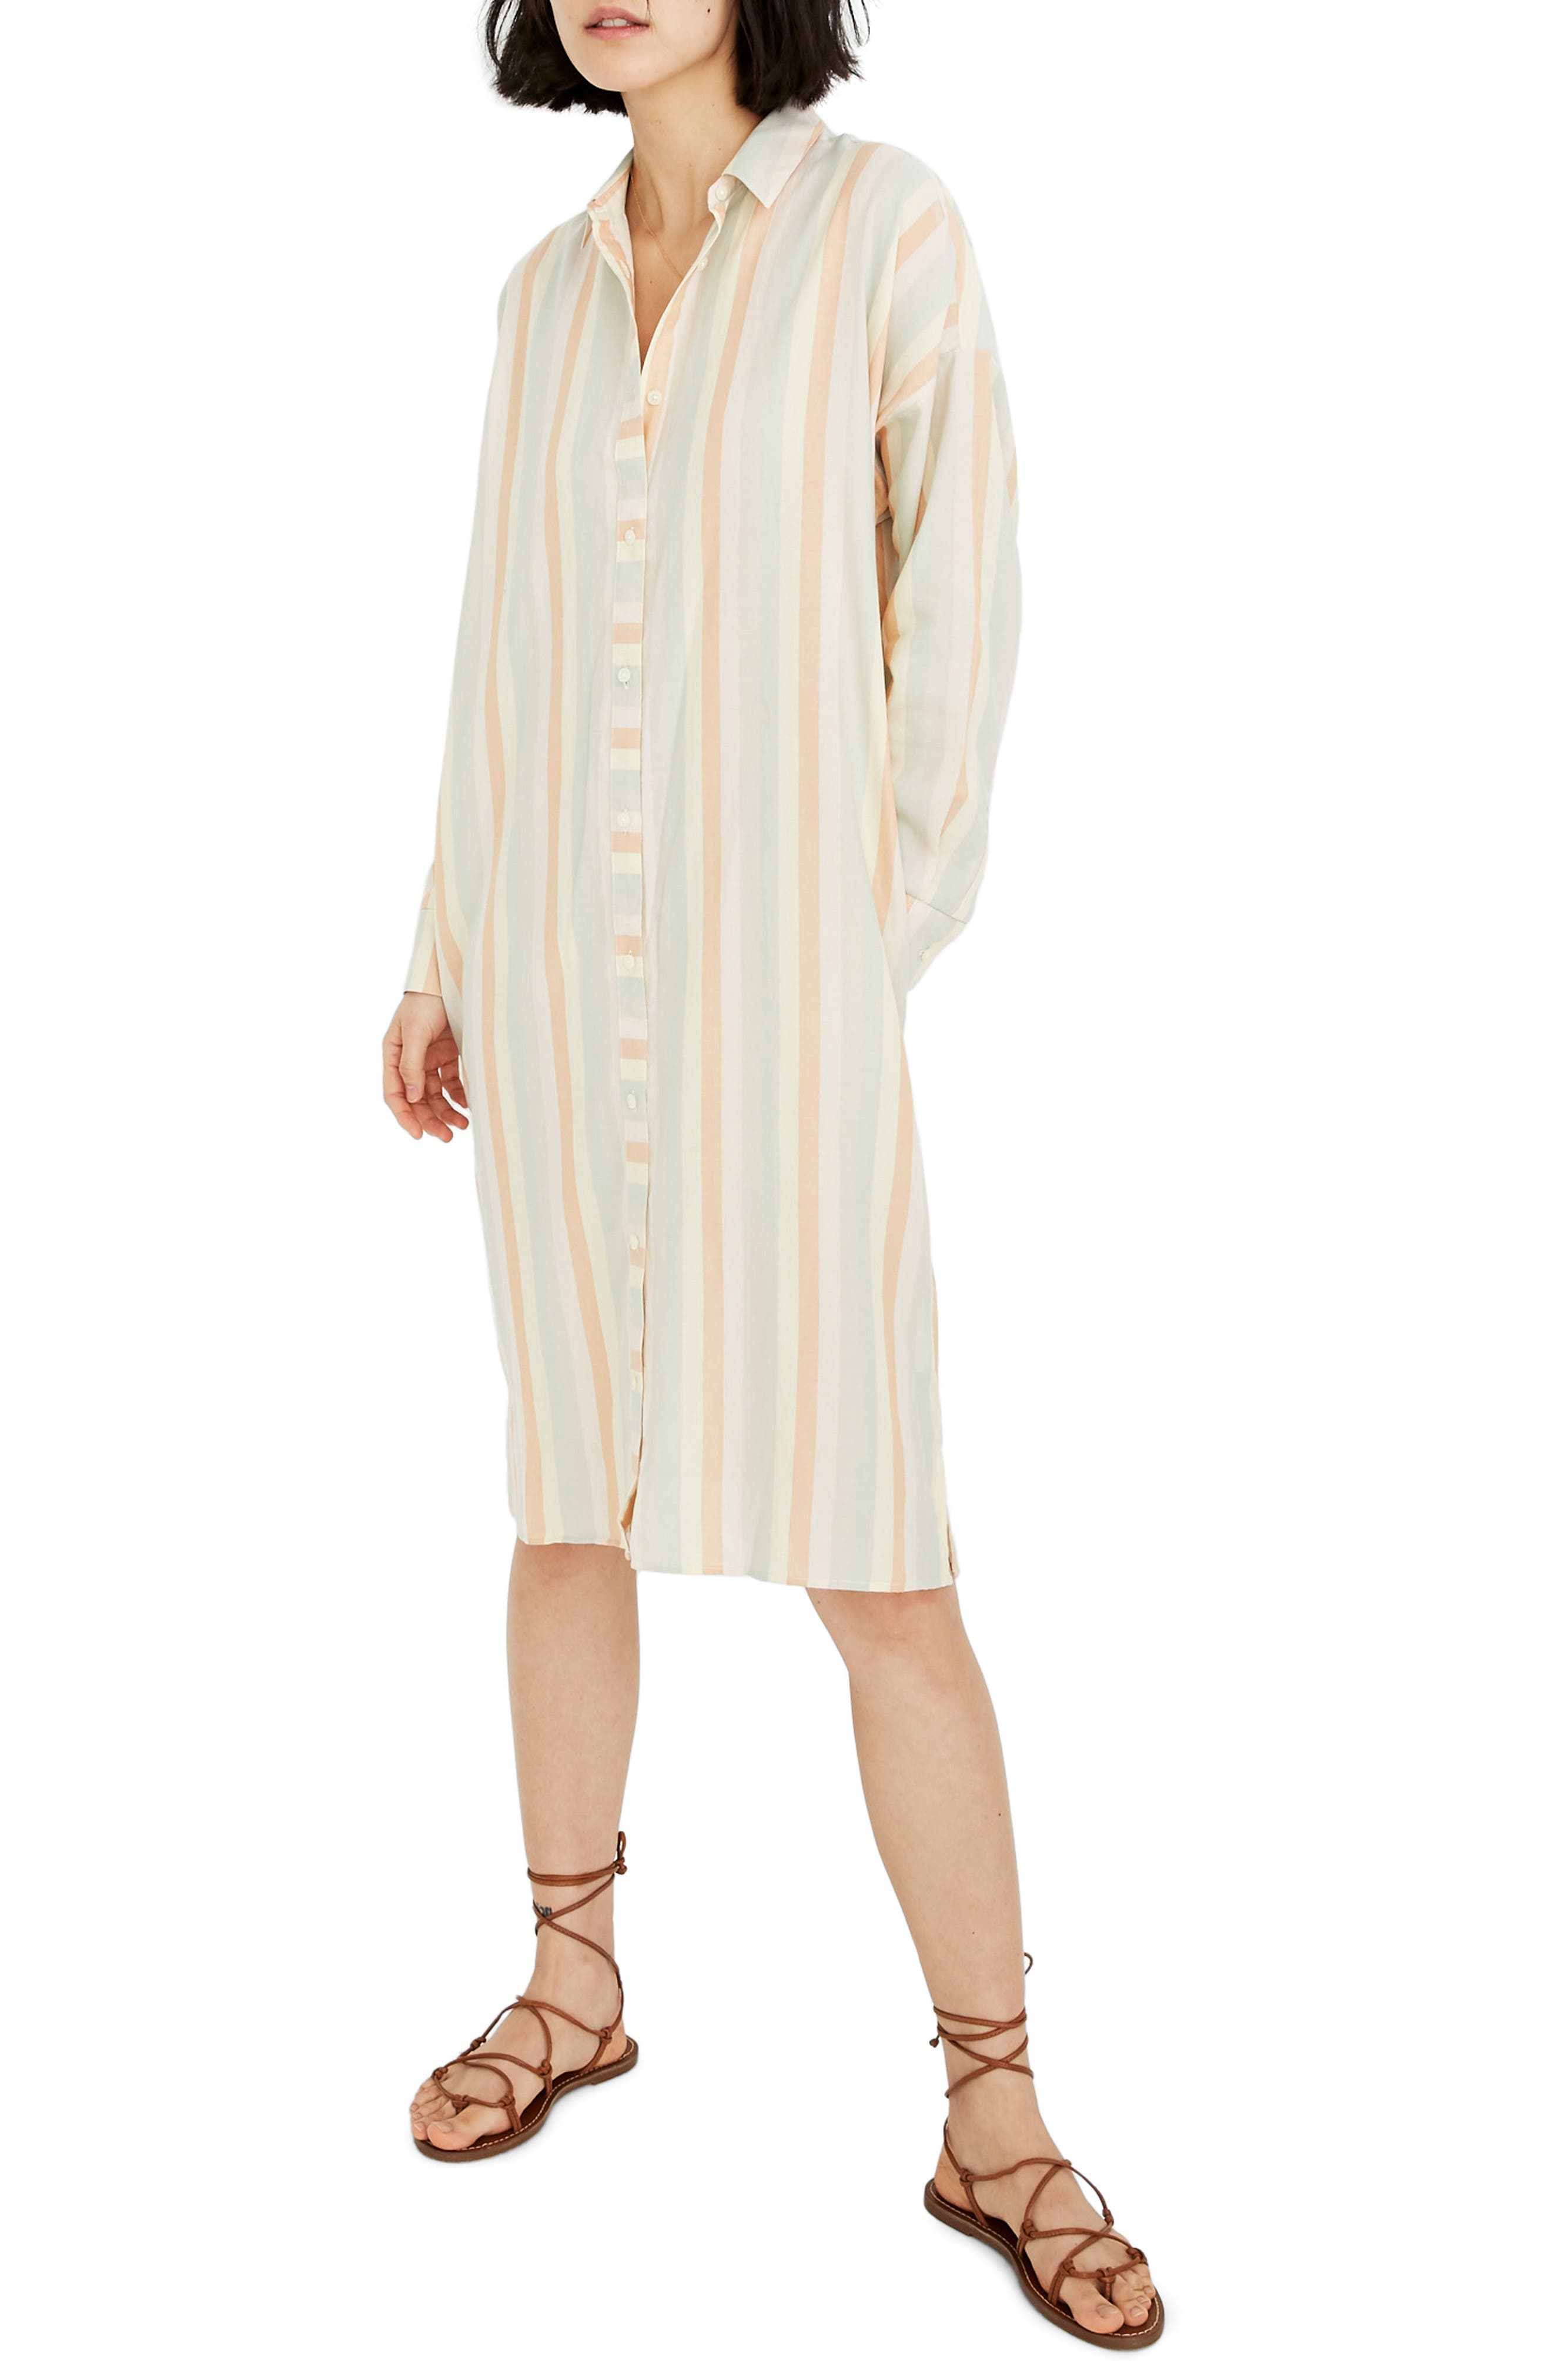 Madewell Rainbow Stripe Long Sleeve Tunic Shirtdress, Orange